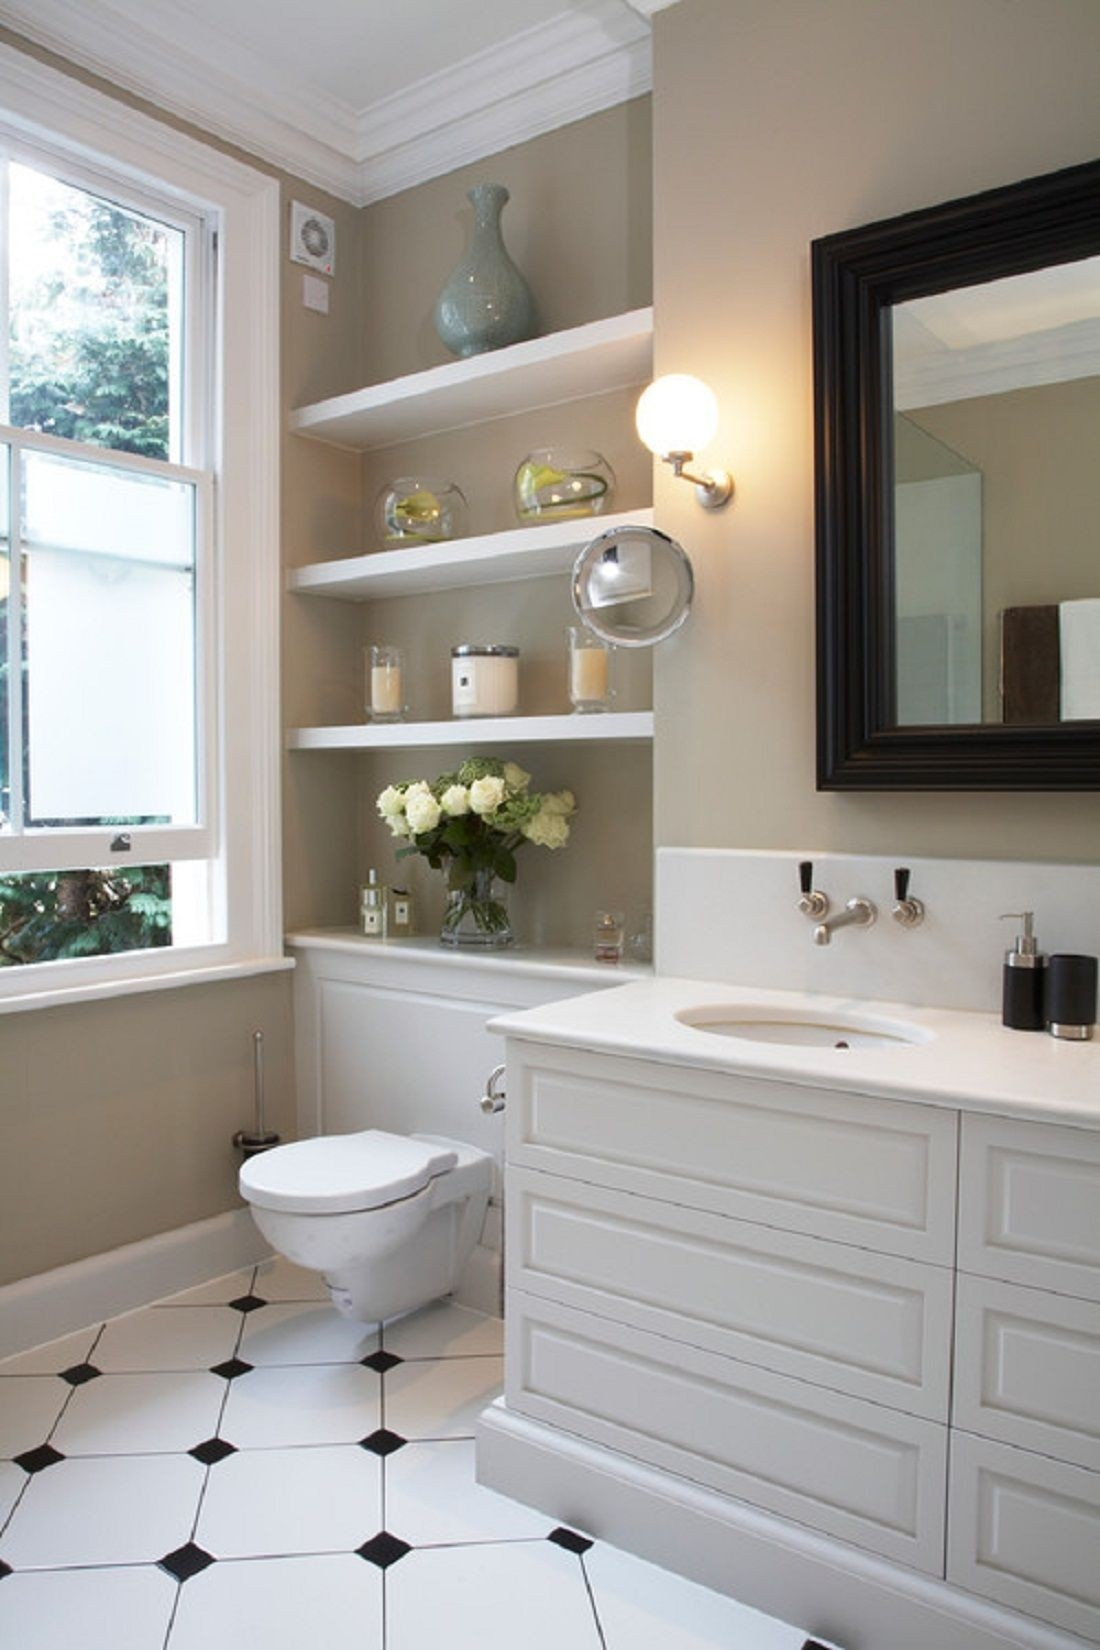 Charmant Shelves Over The Toilet In A Modern Bathroom. Behind Toilet Shelves Might  Be Built Into A Wall Or Delivered With A Separate Wall Mounted Cabinet    Here The ...